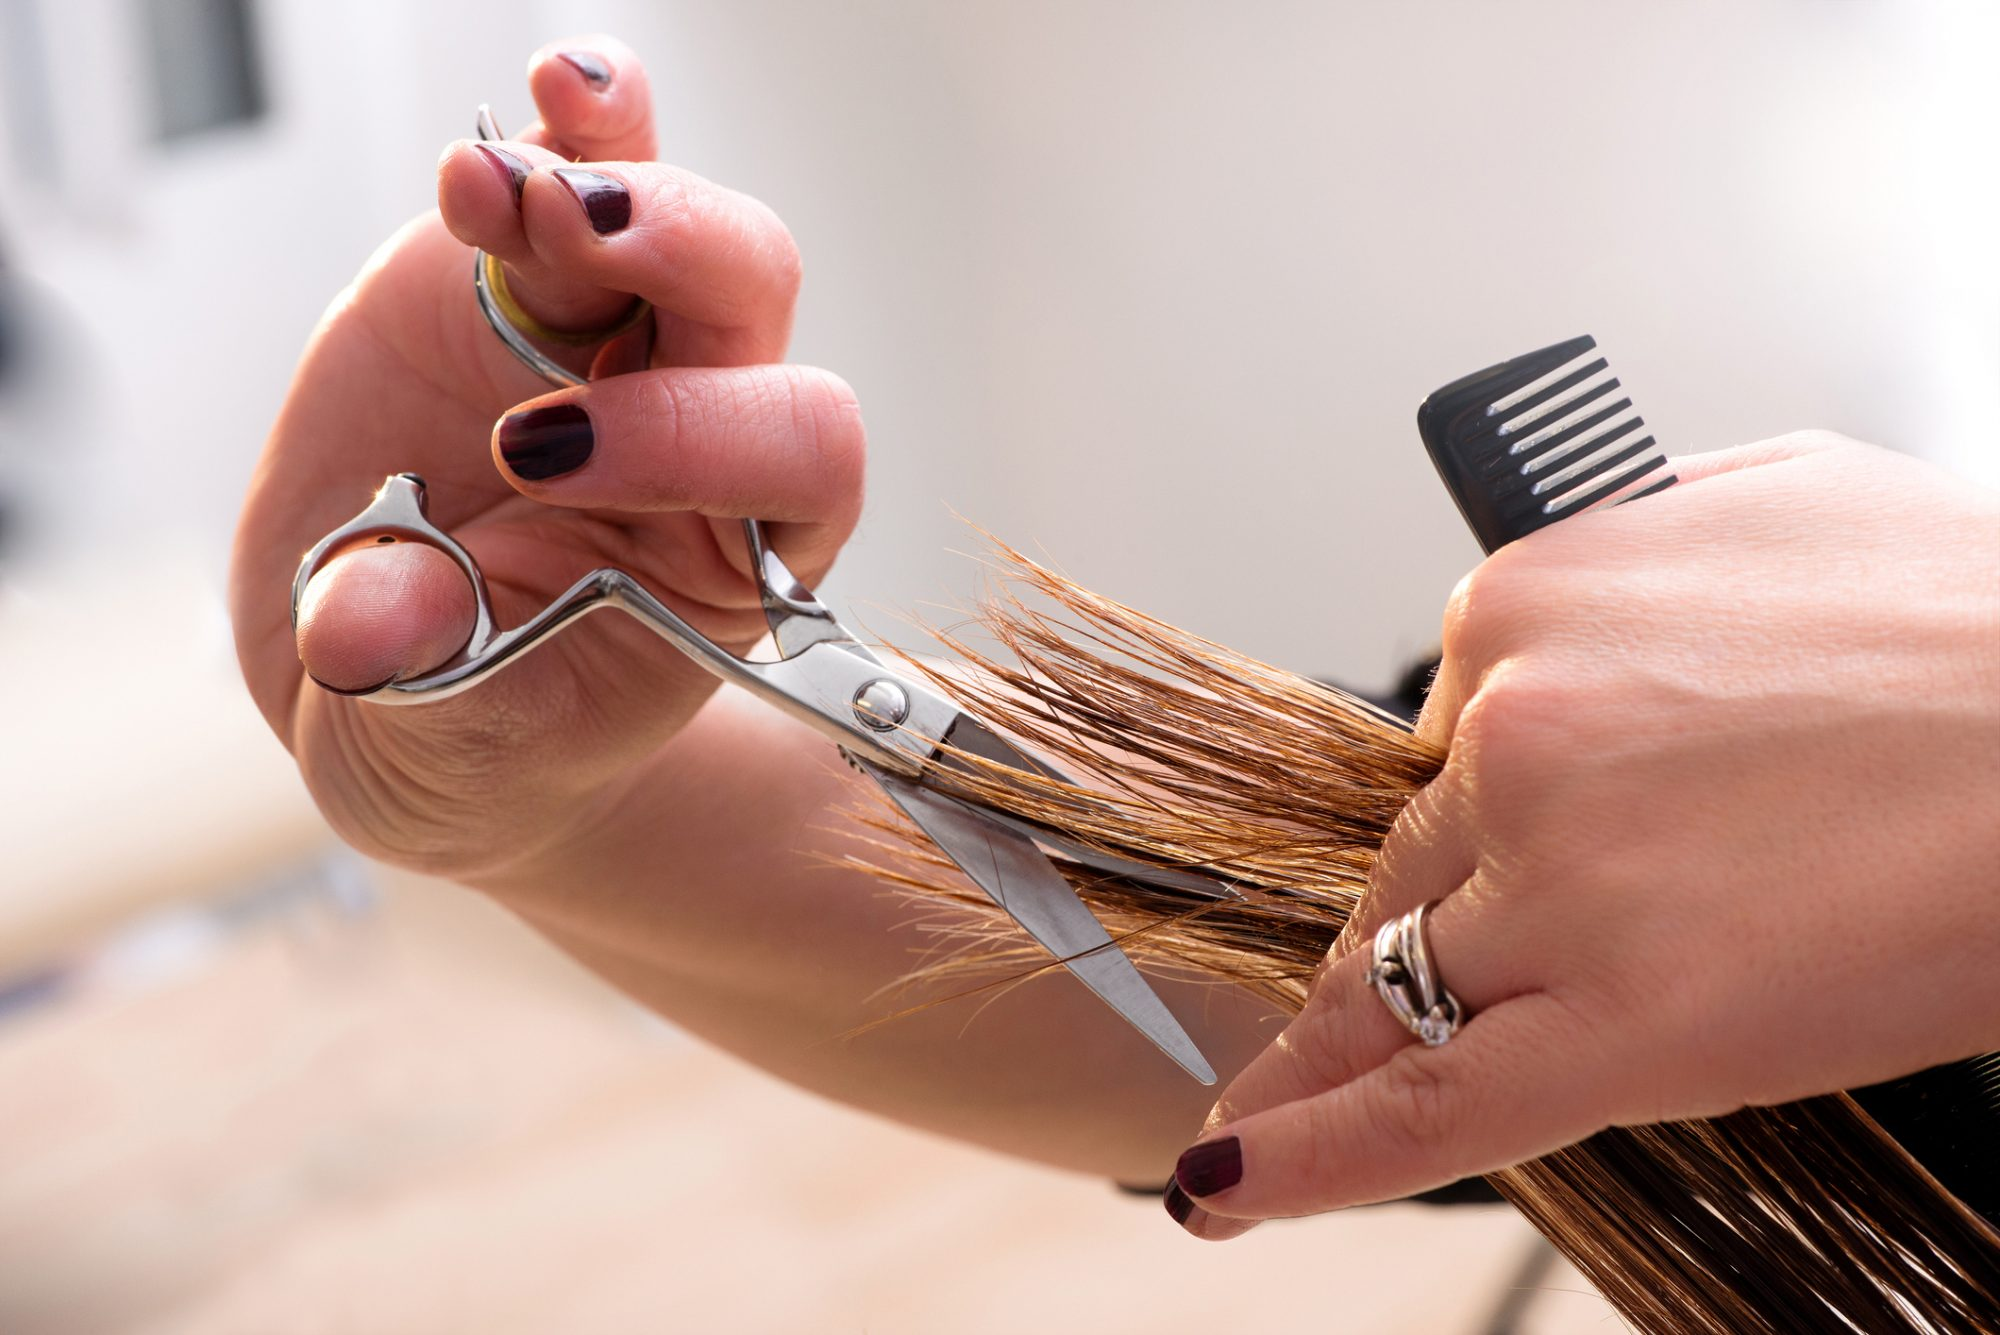 3 Easy Ways to Cut Your Own Hair at Home Without Regretting It